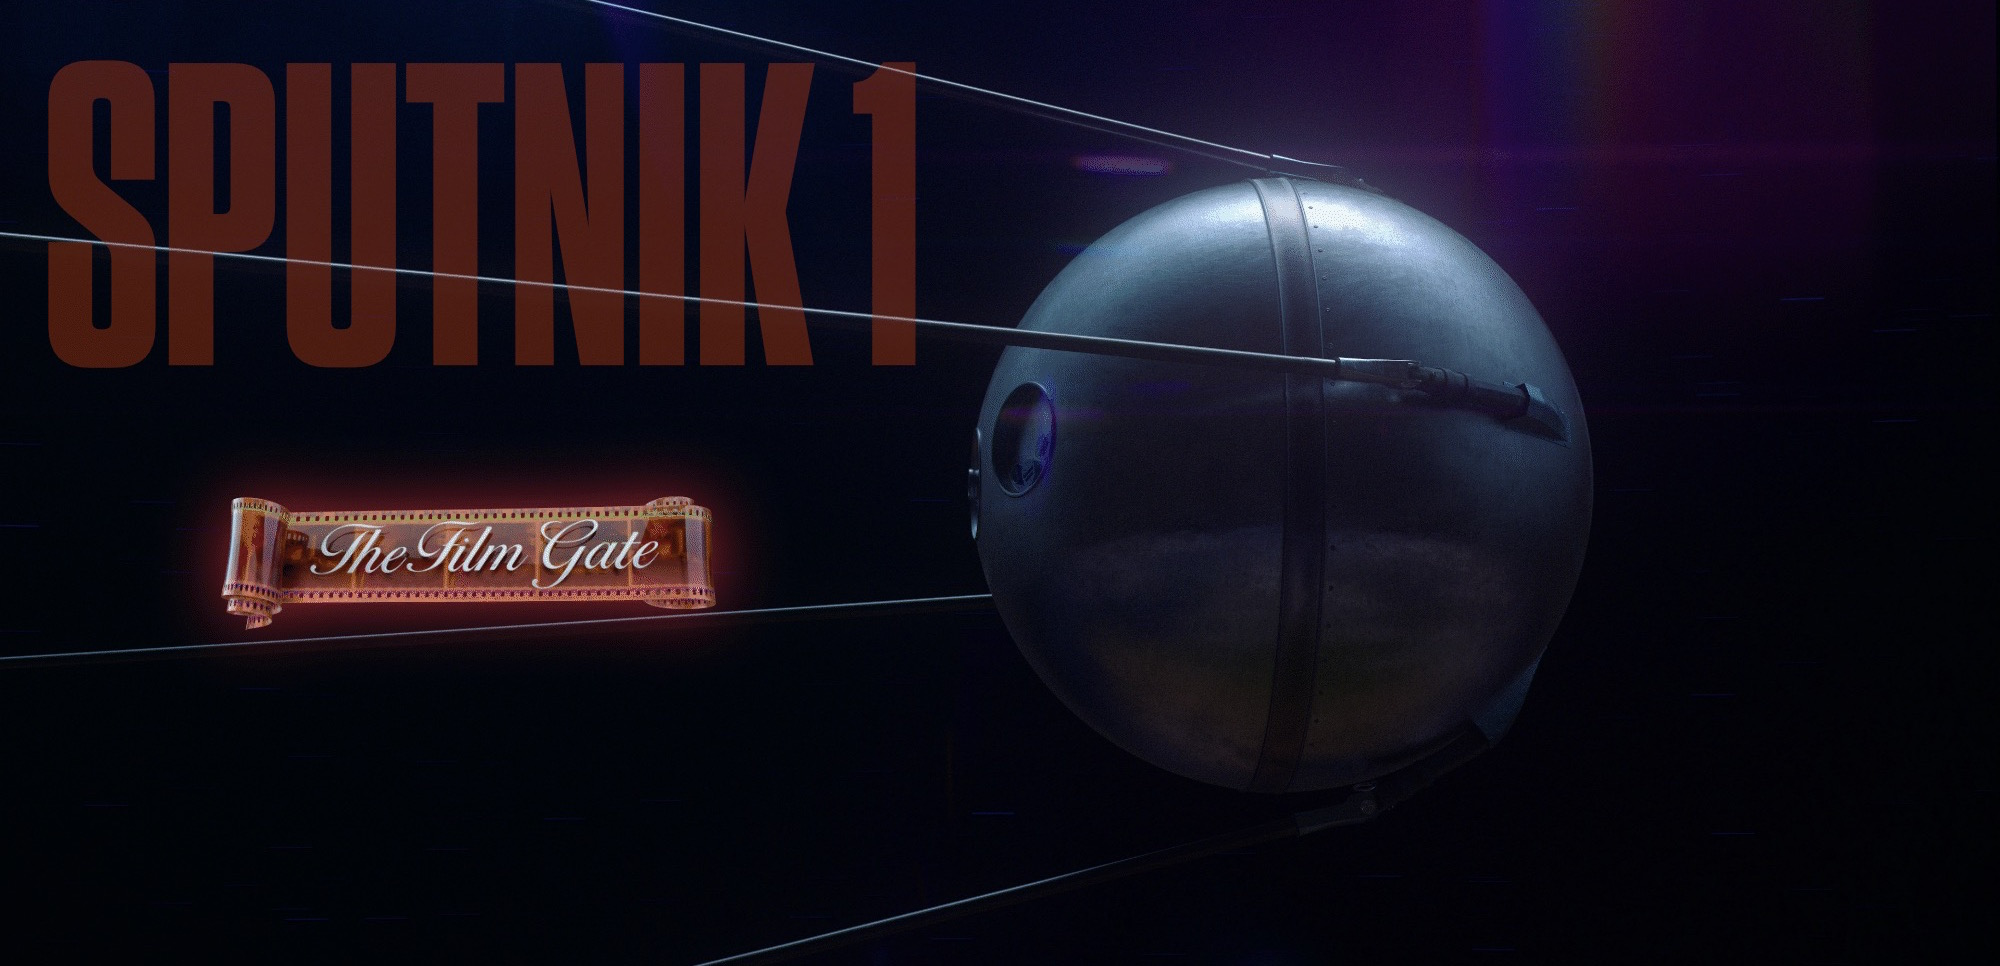 Sputnik Stock Footage Film Gate